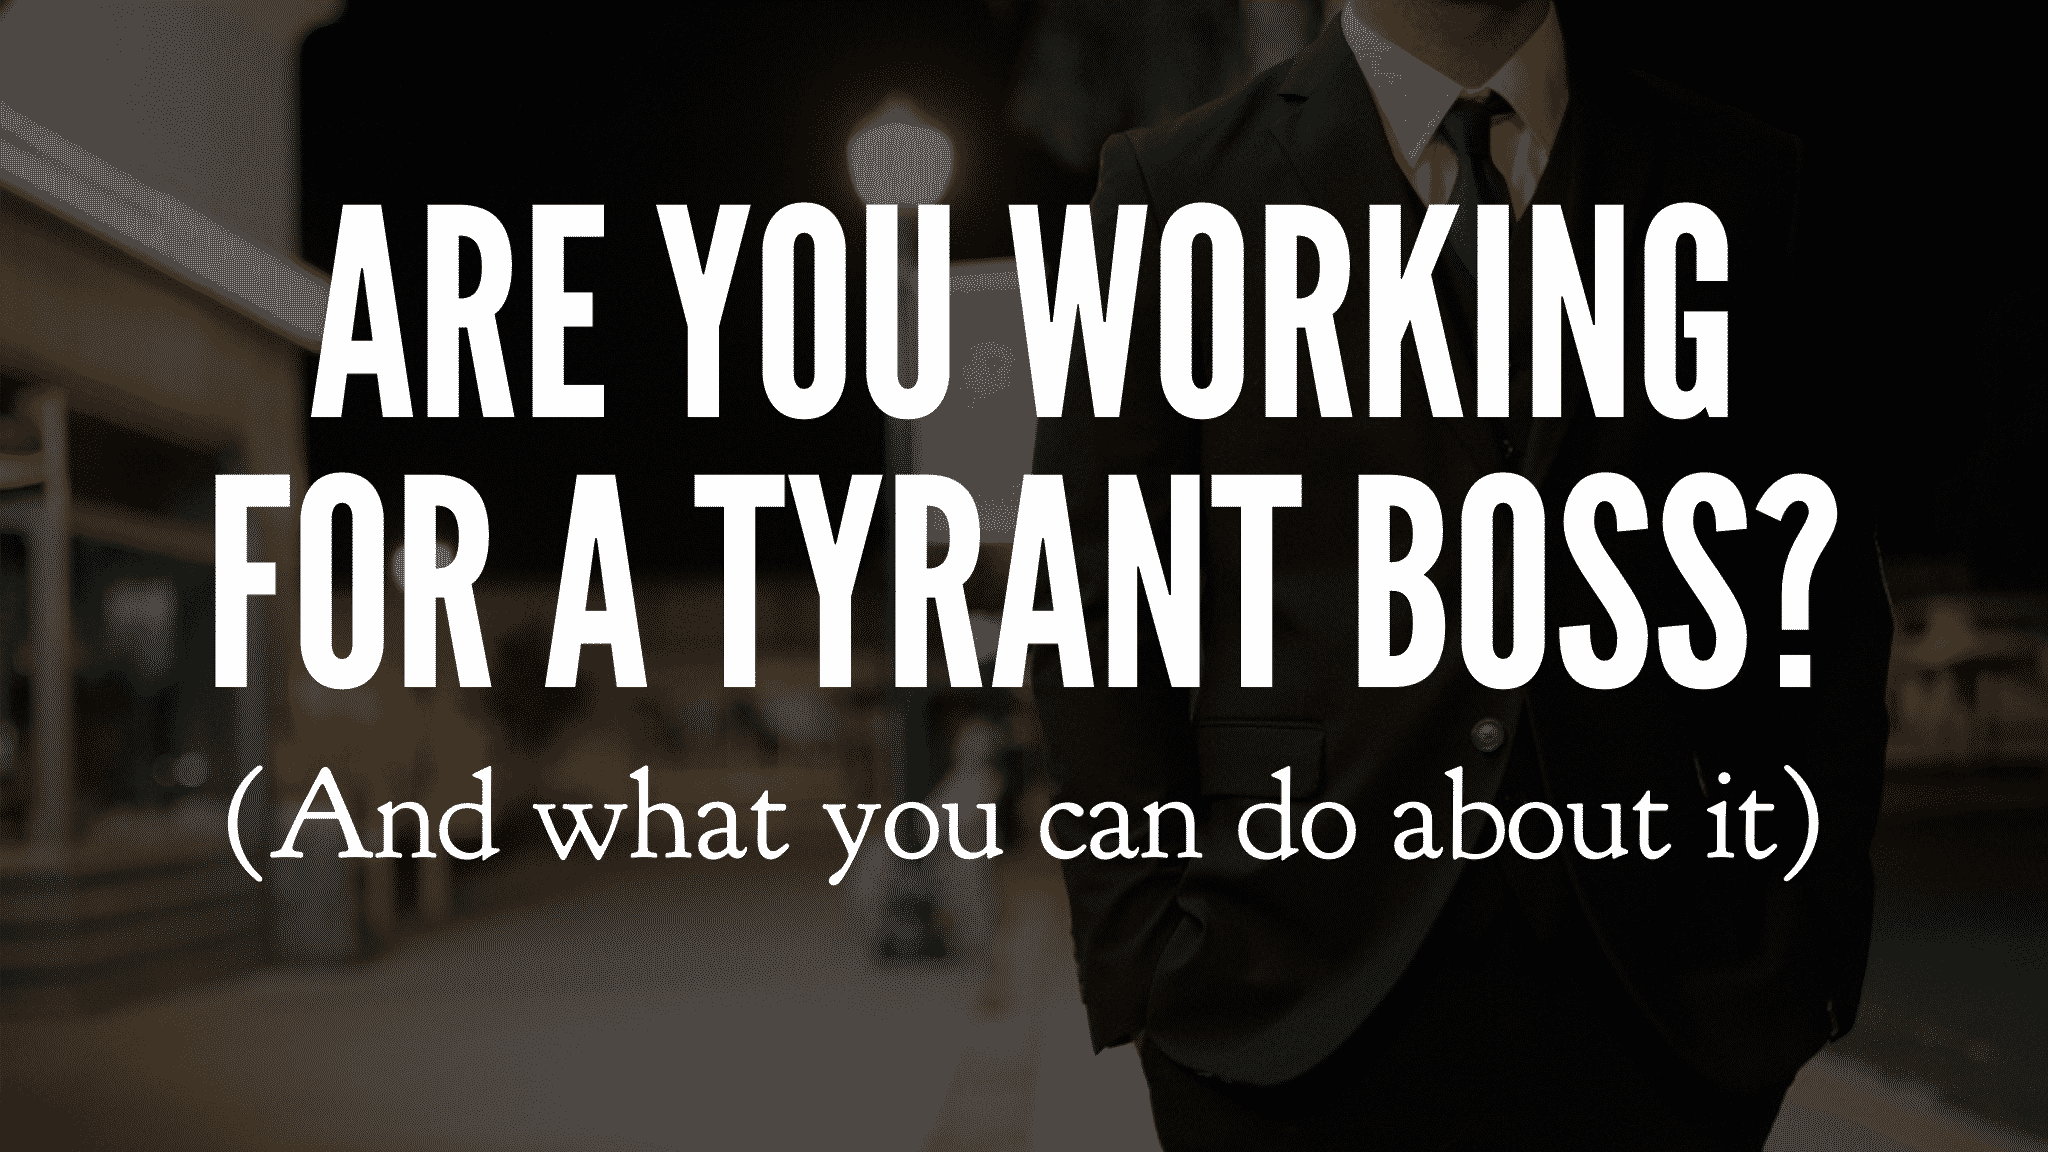 Are You Working For A Tyrant Boss? (And what you can do about it)